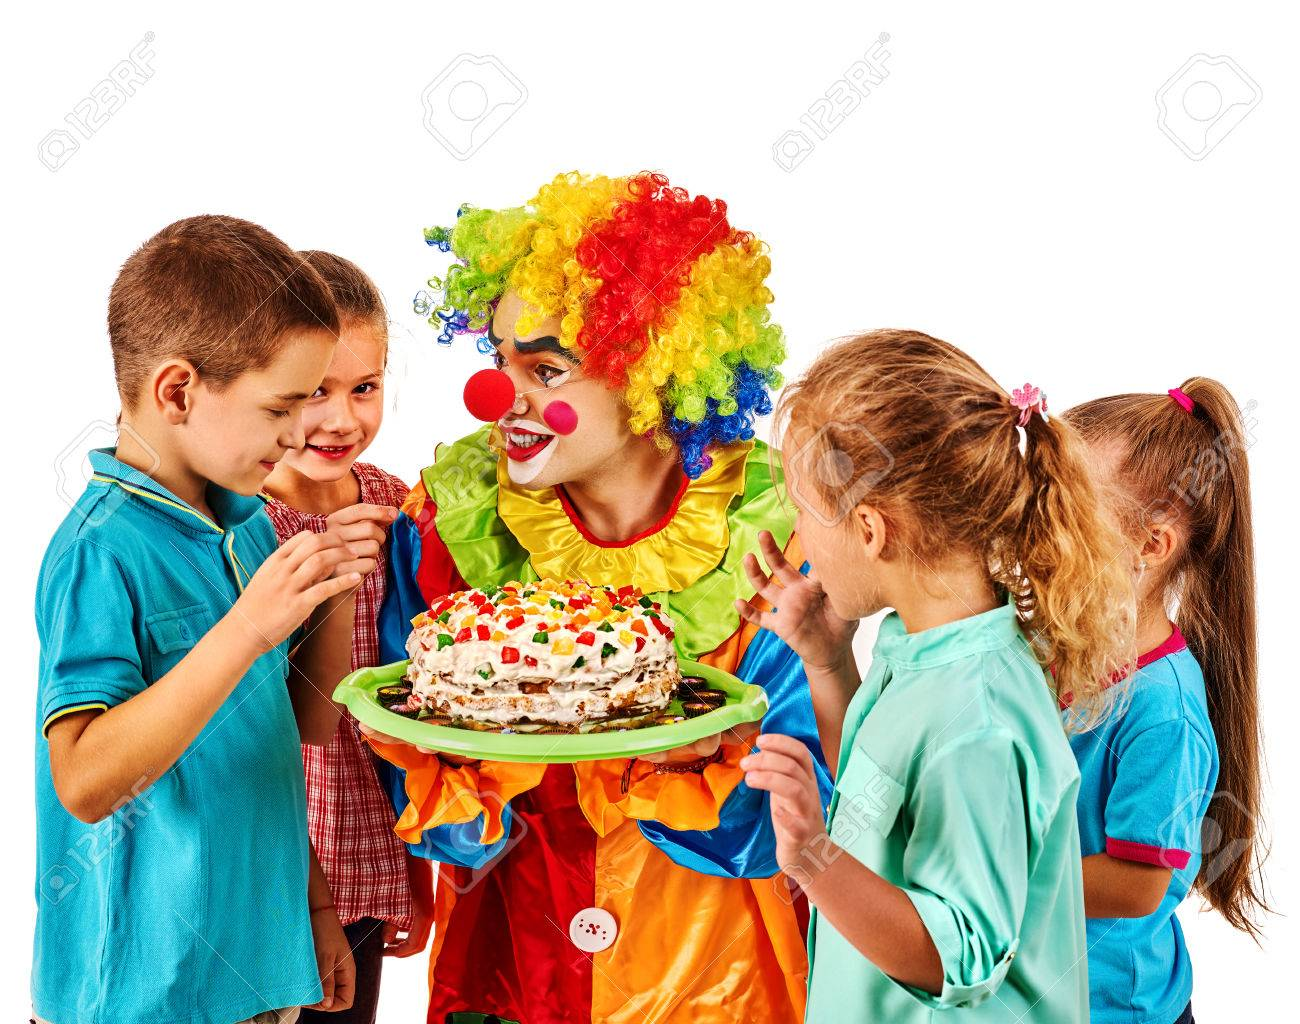 Birthday Child Clown Playing With Children Kid Cakes Celebratory In Hands Of Events Organizer Man